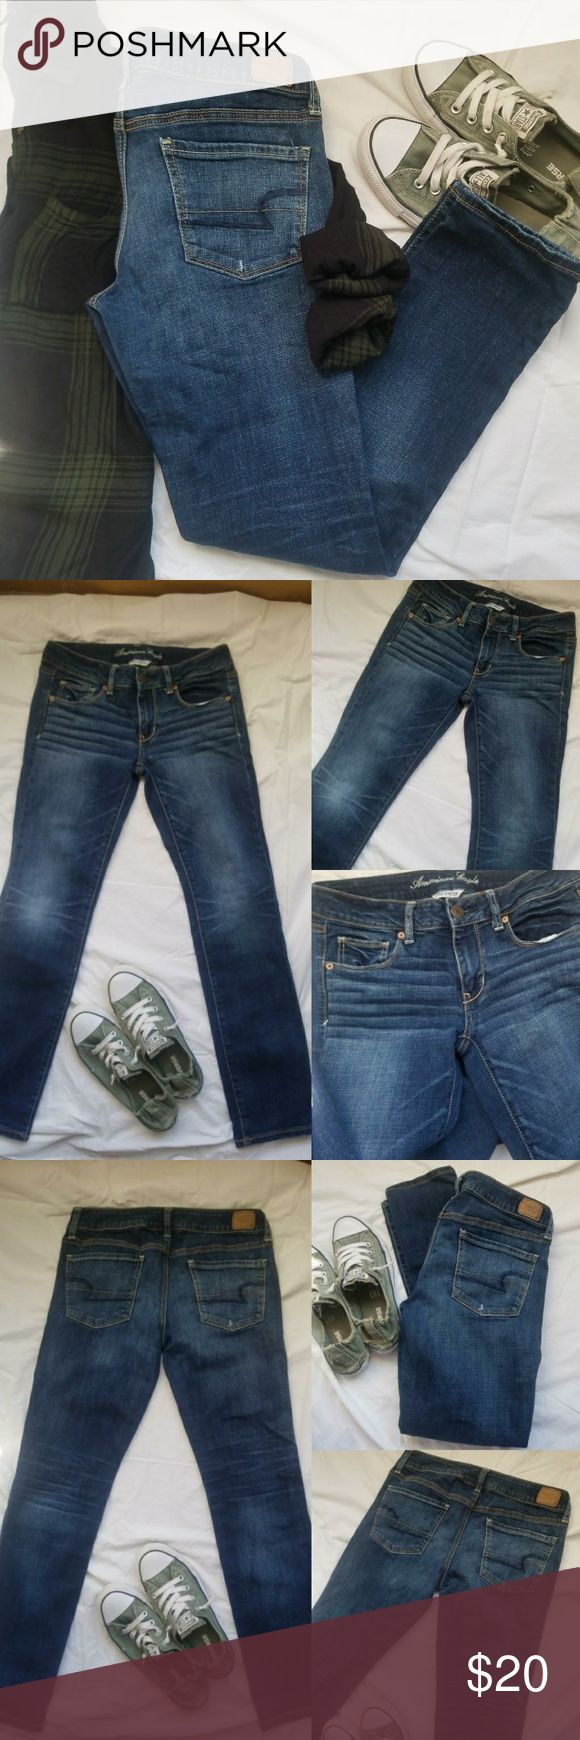 """American Eagle Skinny Jeans Last photo not of actual jeans wash but style. Shown to give the look idea Online description-The ultimate """"cool girl"""" fit made for every day. Super Stretch 